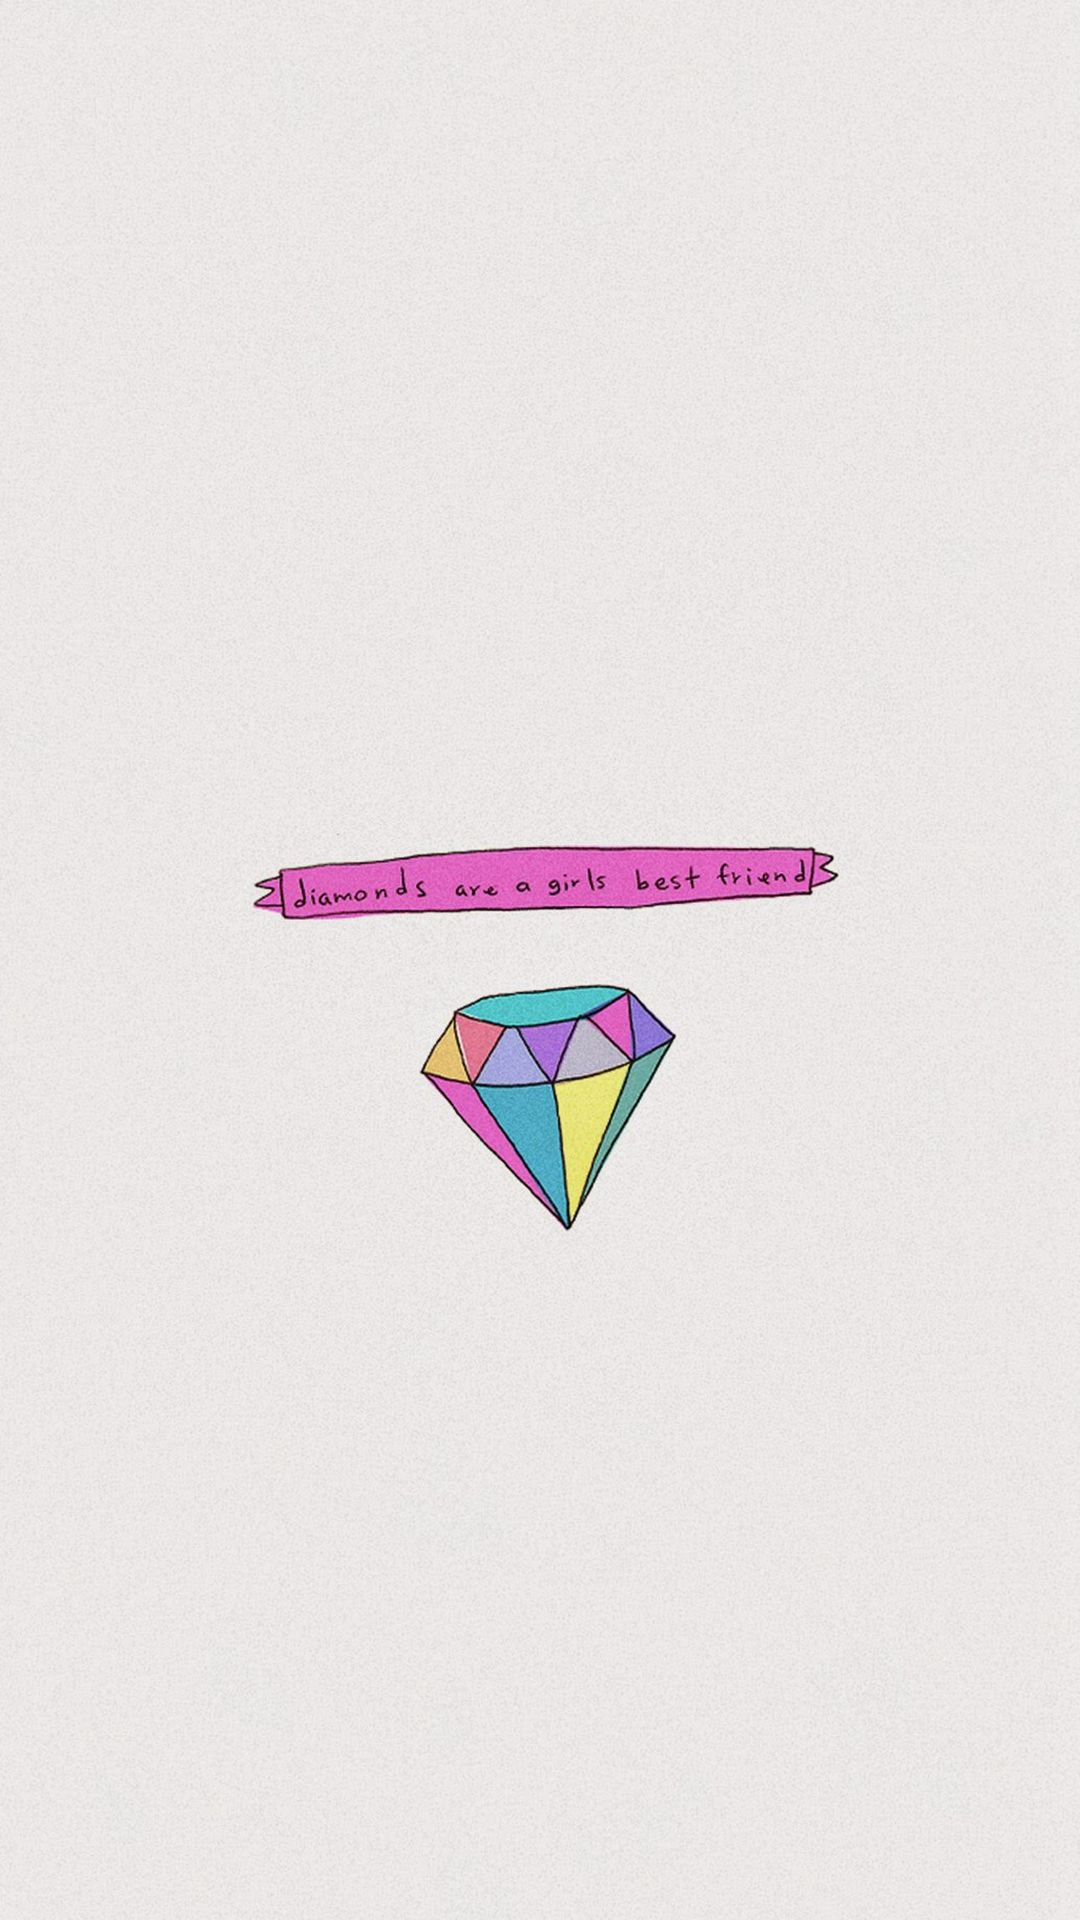 Diamonds Are A Girls Best Friend Iphone 6 Wallpaper Download Iphone Wallpapers Ipad Wallpa Iphone Wallpaper Hipster Best Friend Wallpaper Hd Cute Wallpapers